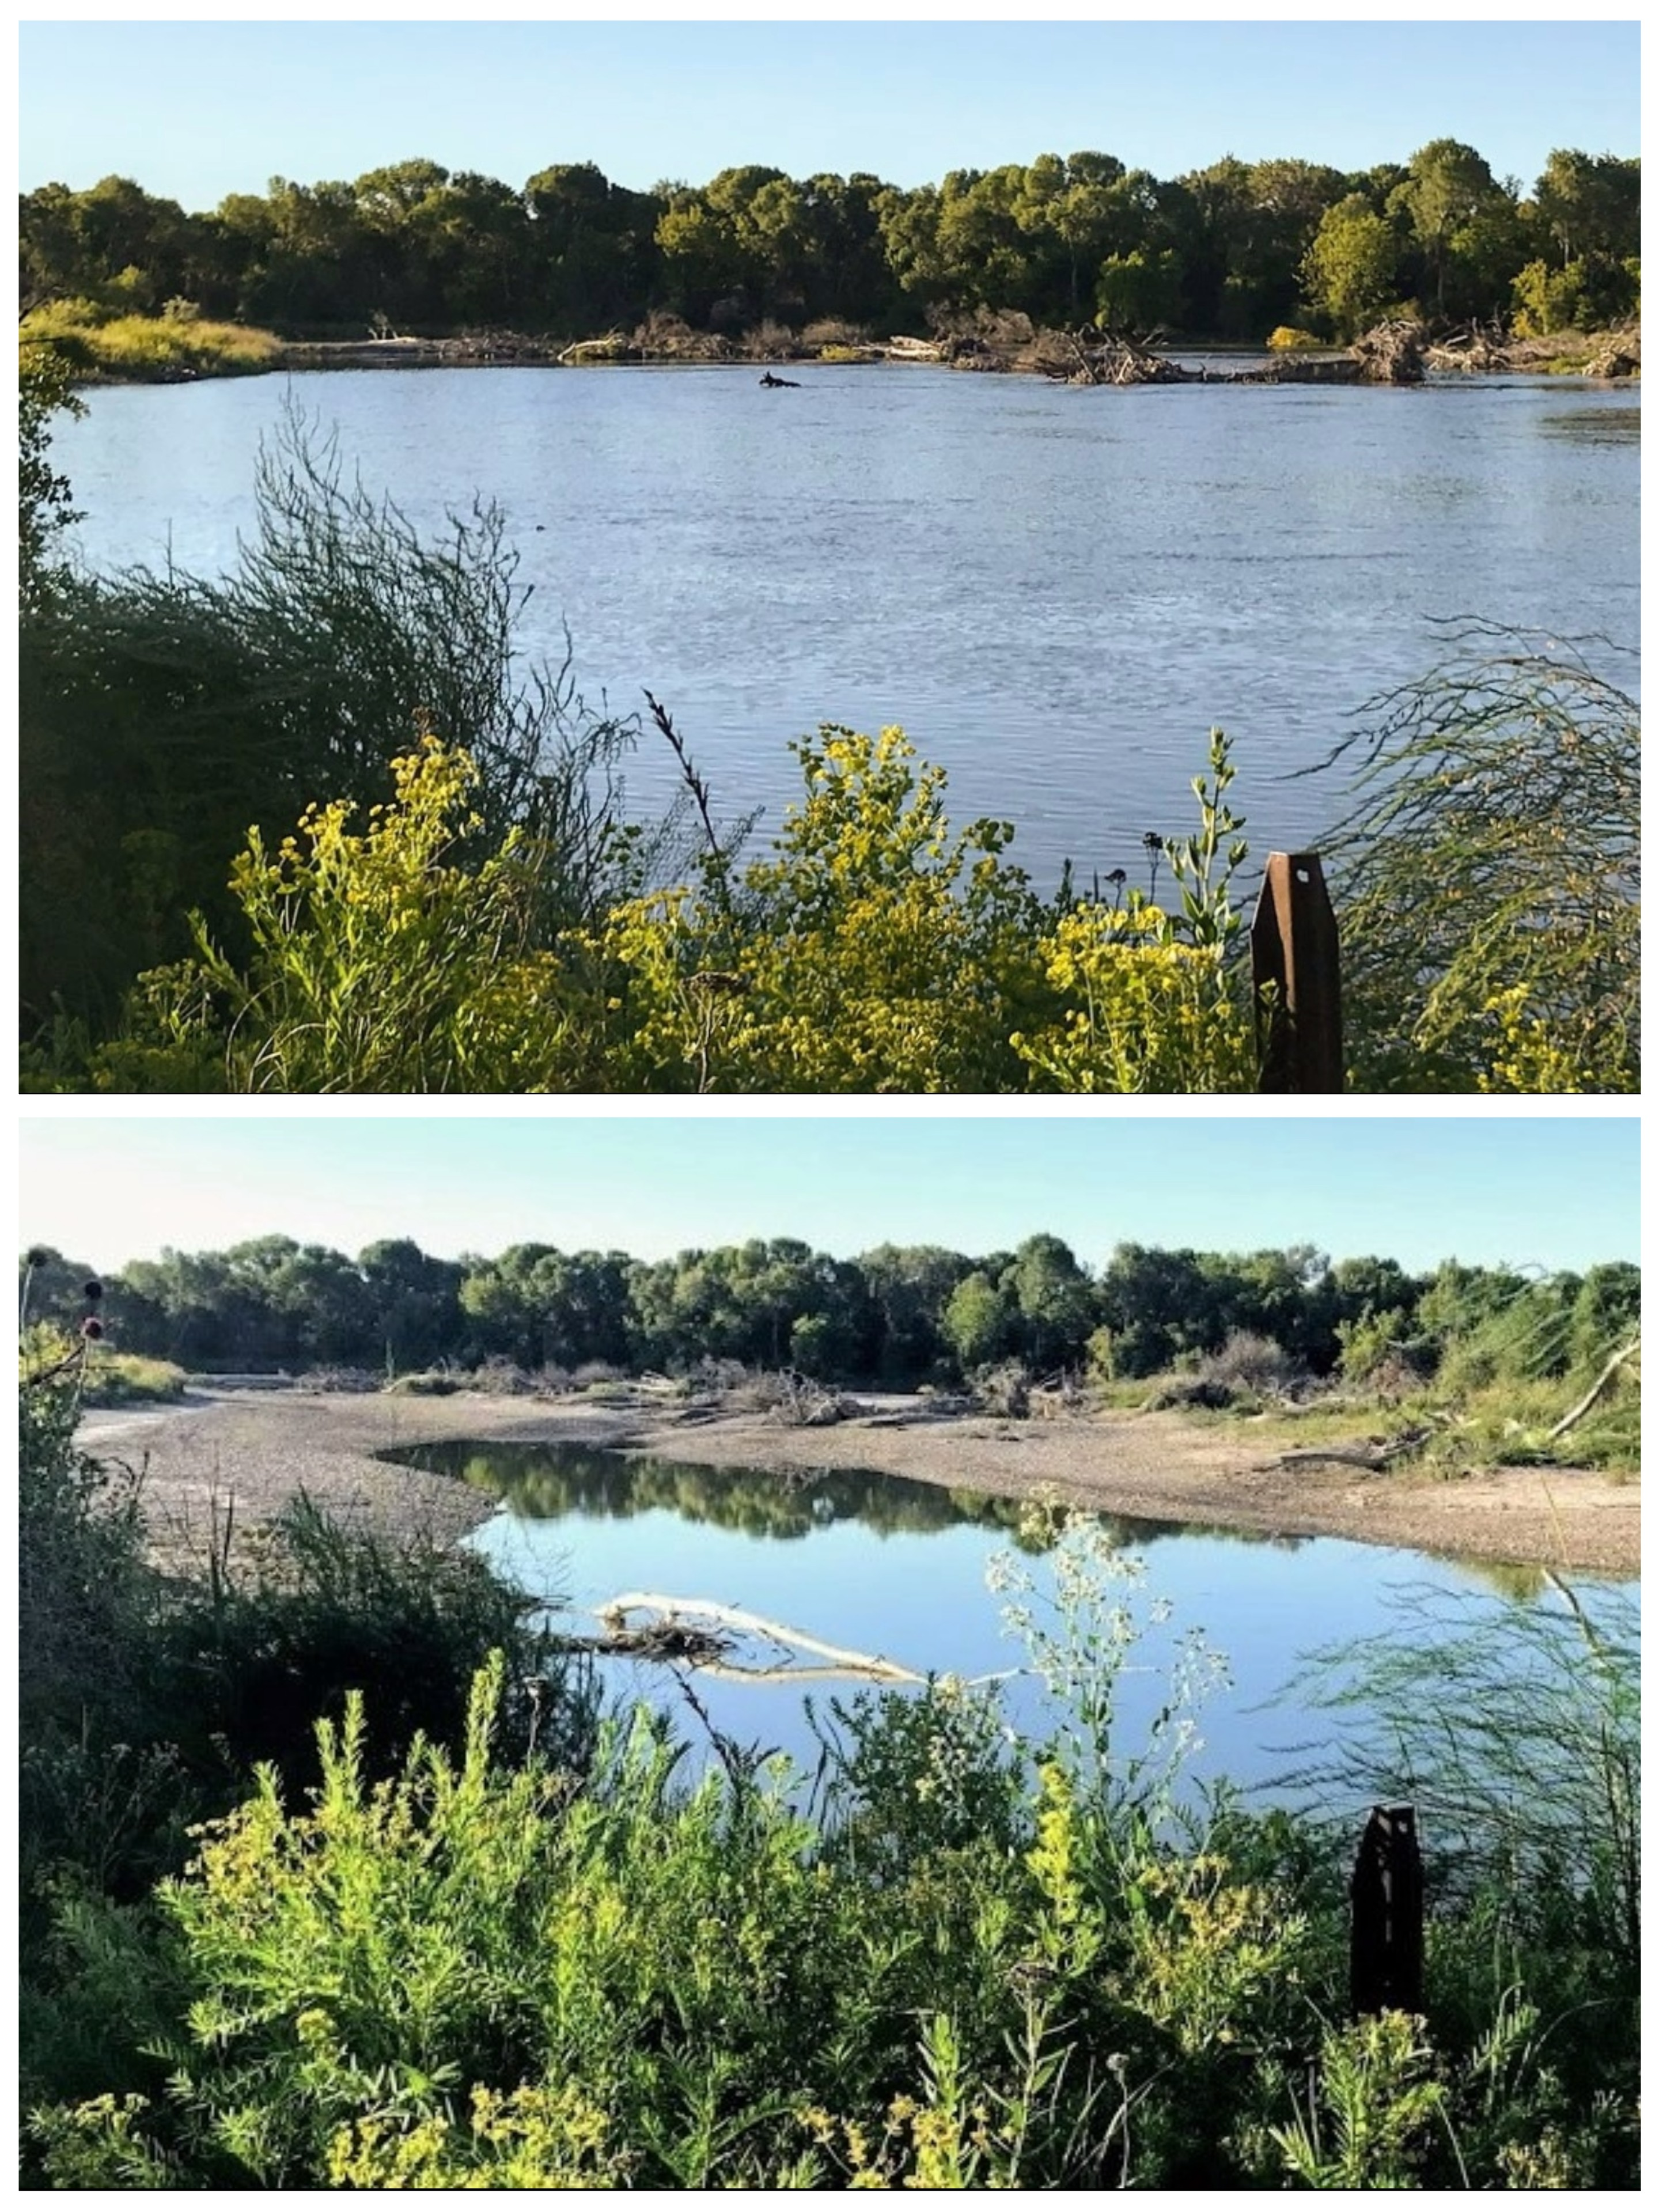 the top photo shows a wide view of a river with a small dot, which is a moose's head sticking above the water. the bottom image shows the same trees, but the view is about half land rather than mostly water